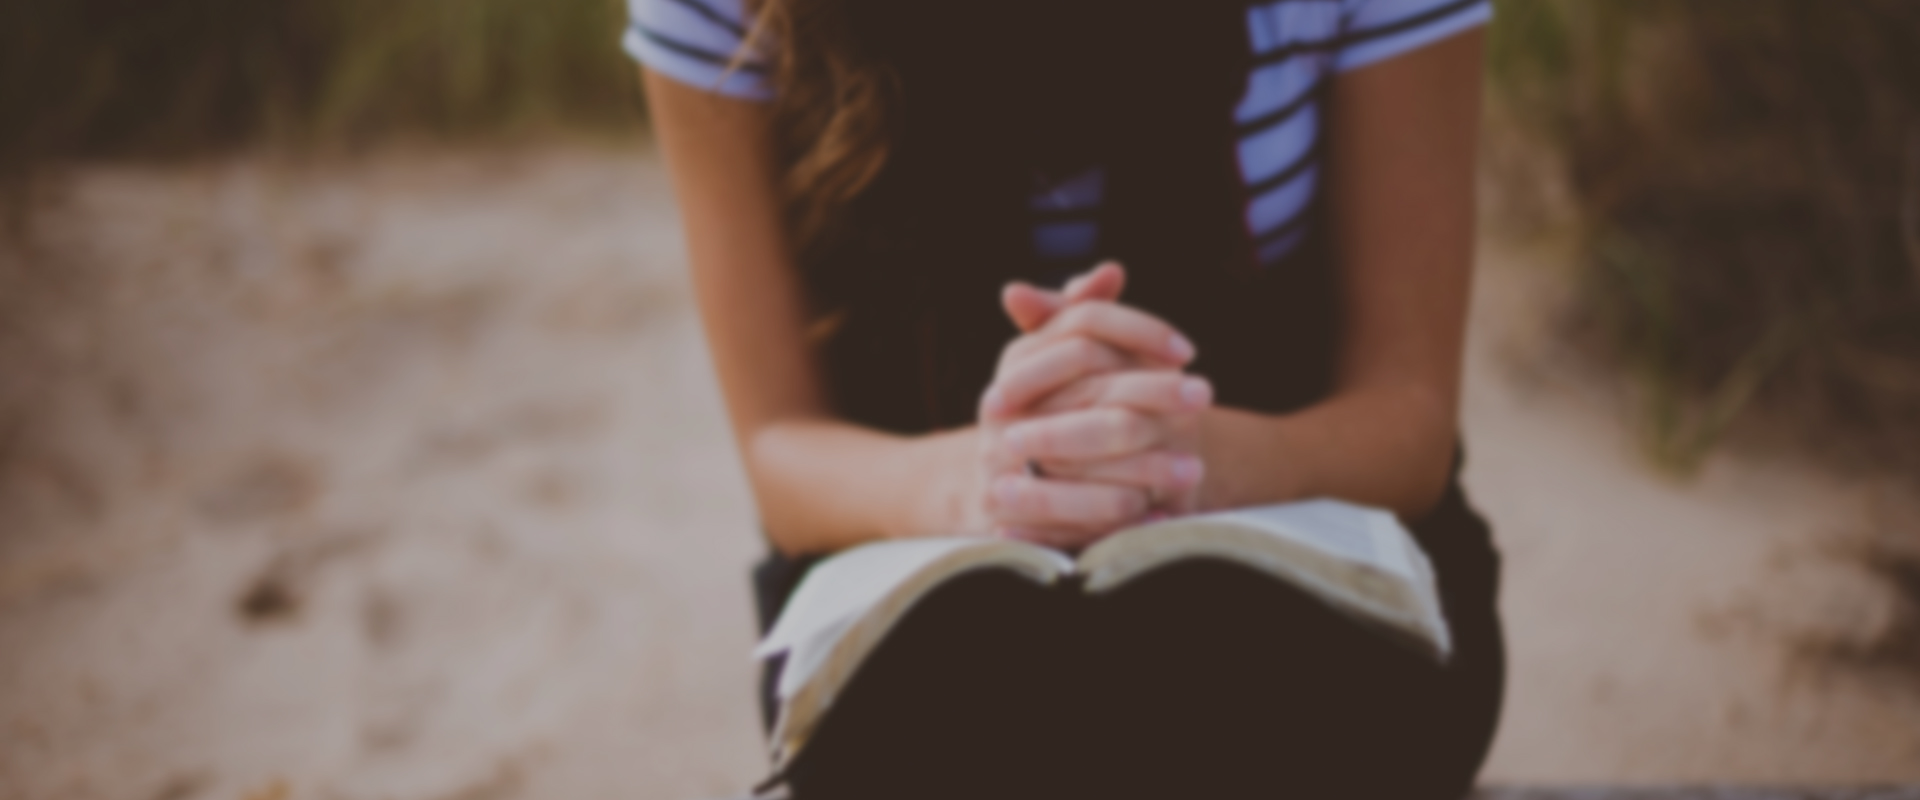 New Singleness Study: Worn in the Waiting